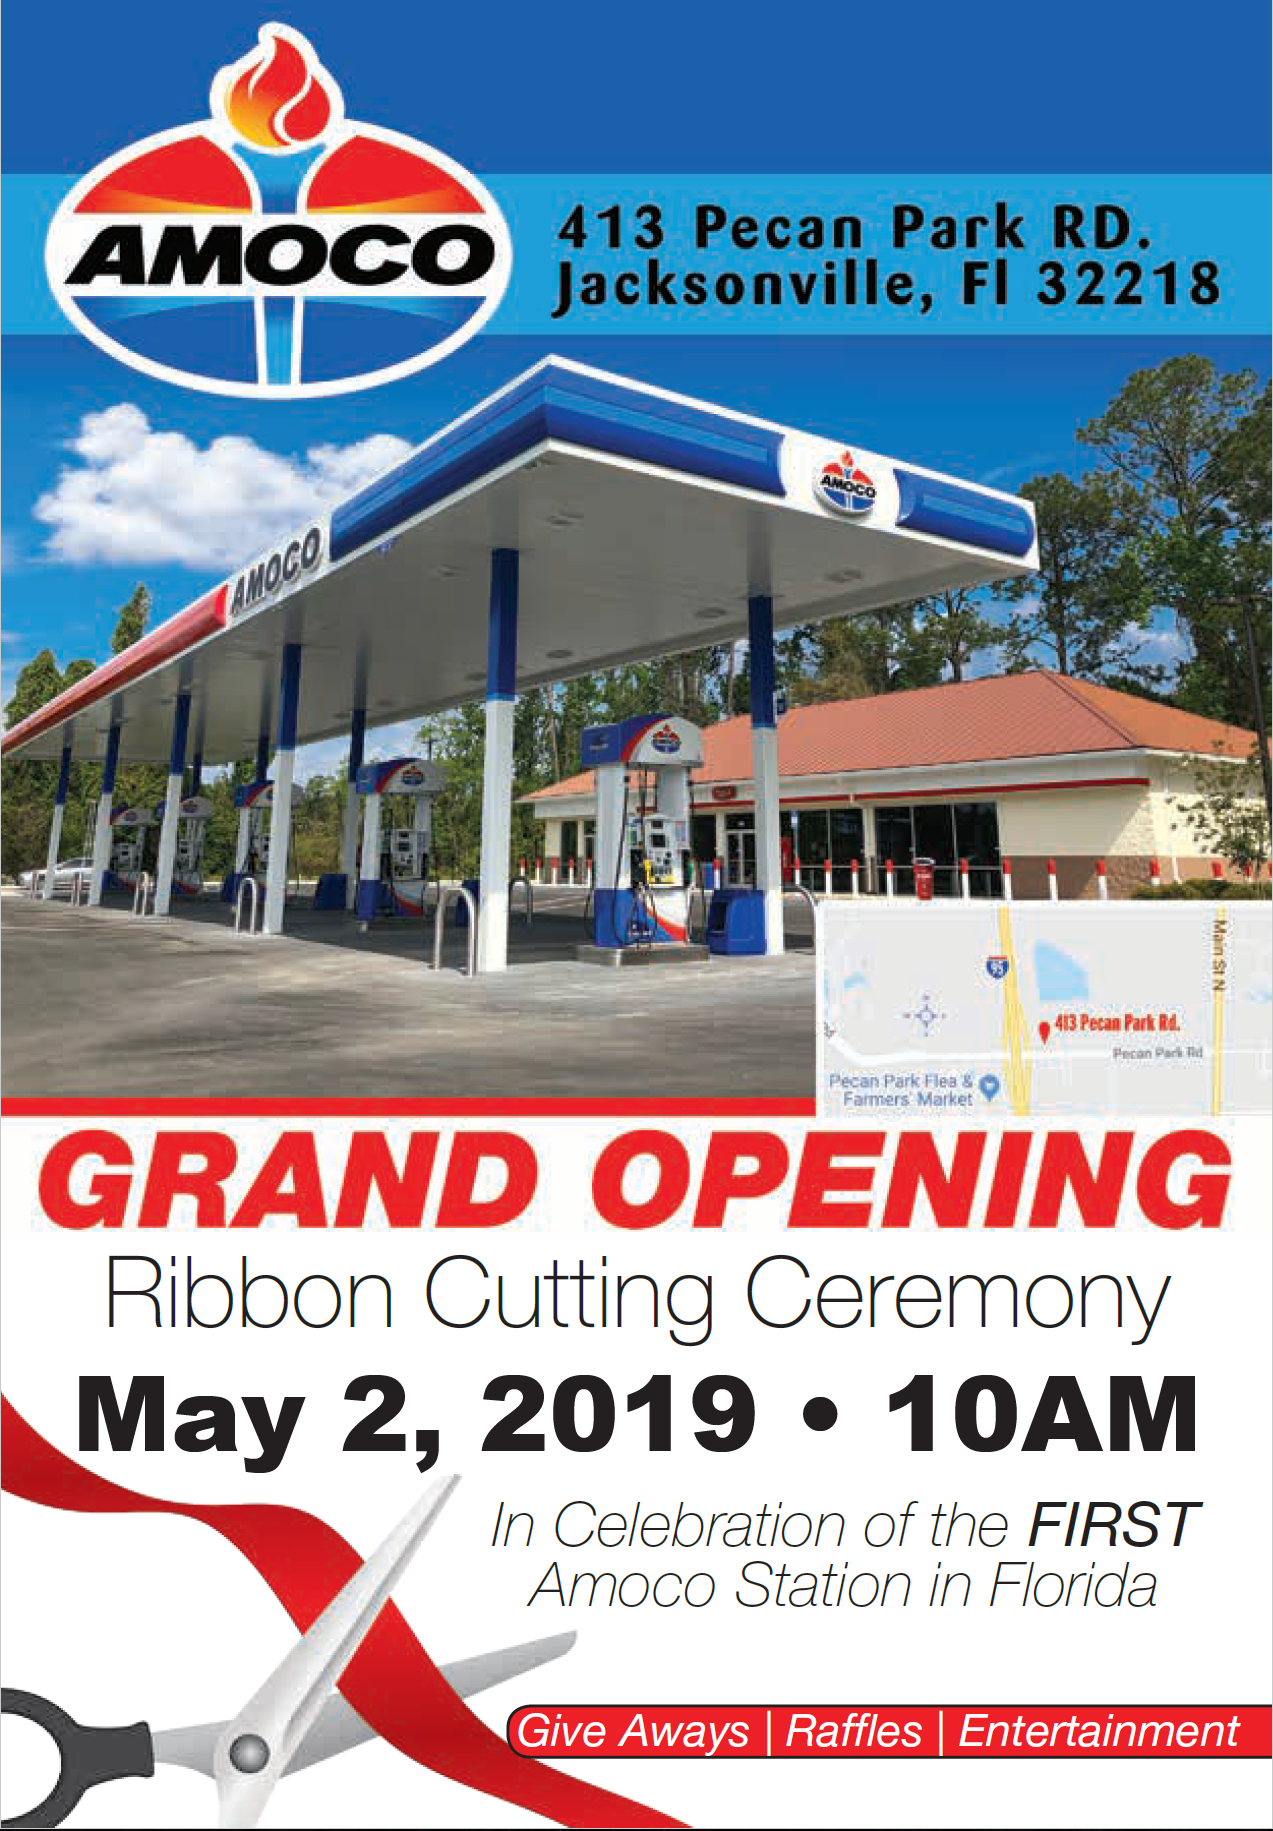 Grand Opening for First Amoco Branded Fueling Station in Florida May 2, 2019